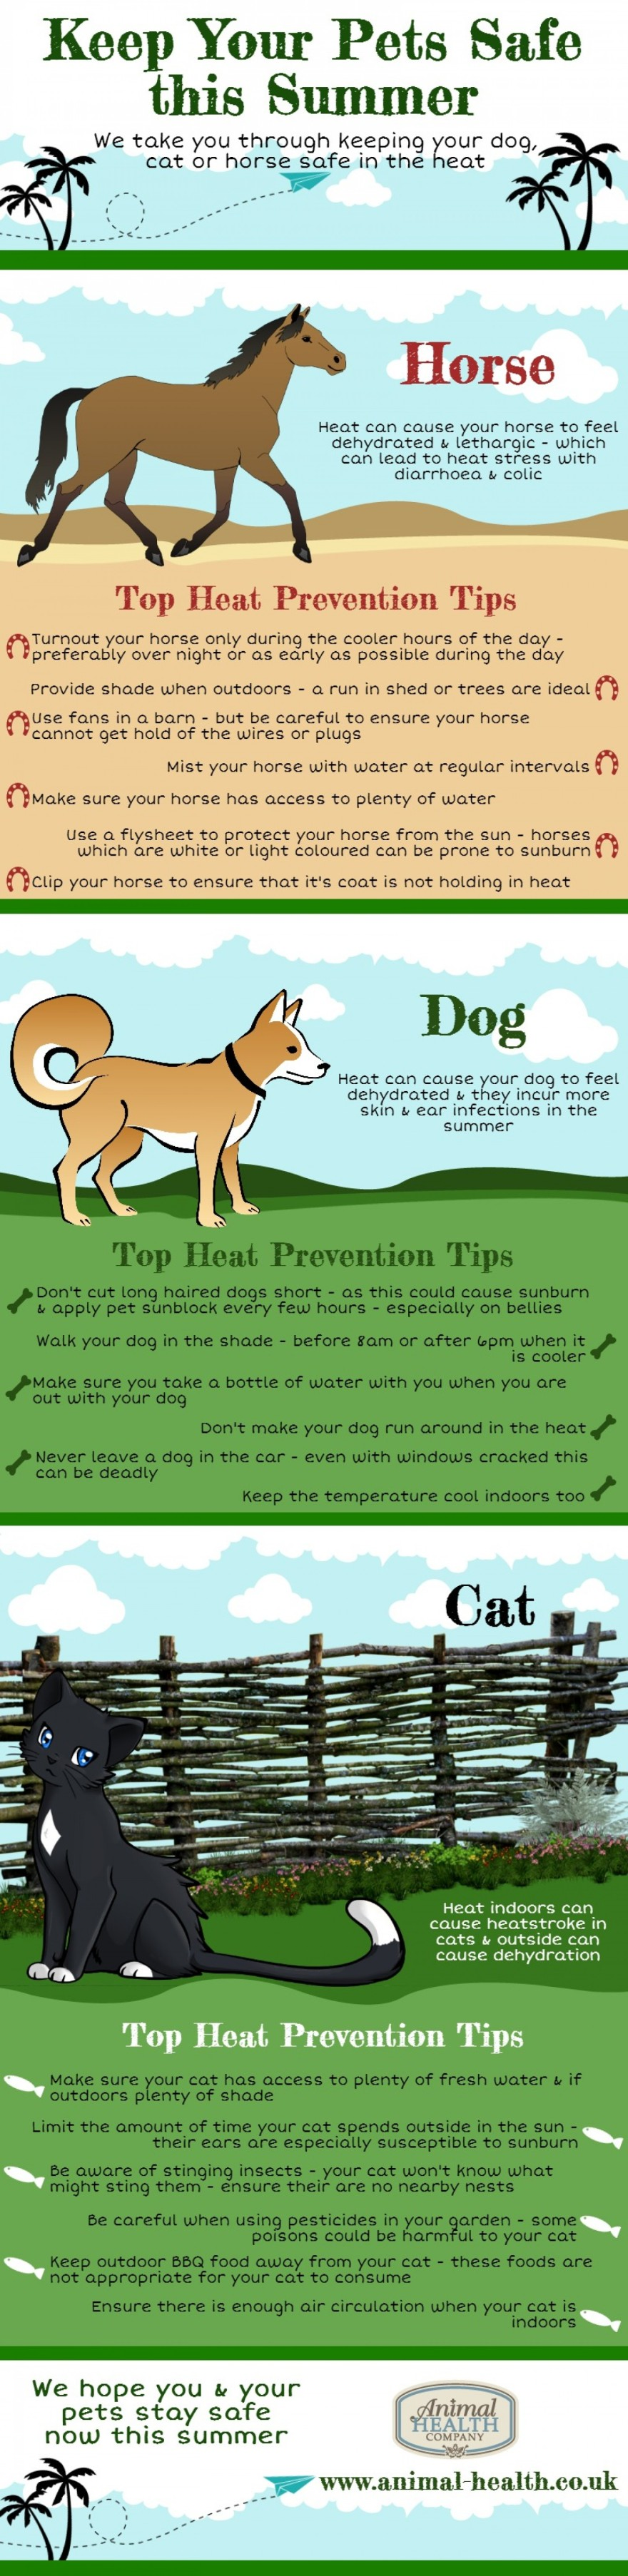 keep-your-pets-safe-this-summer